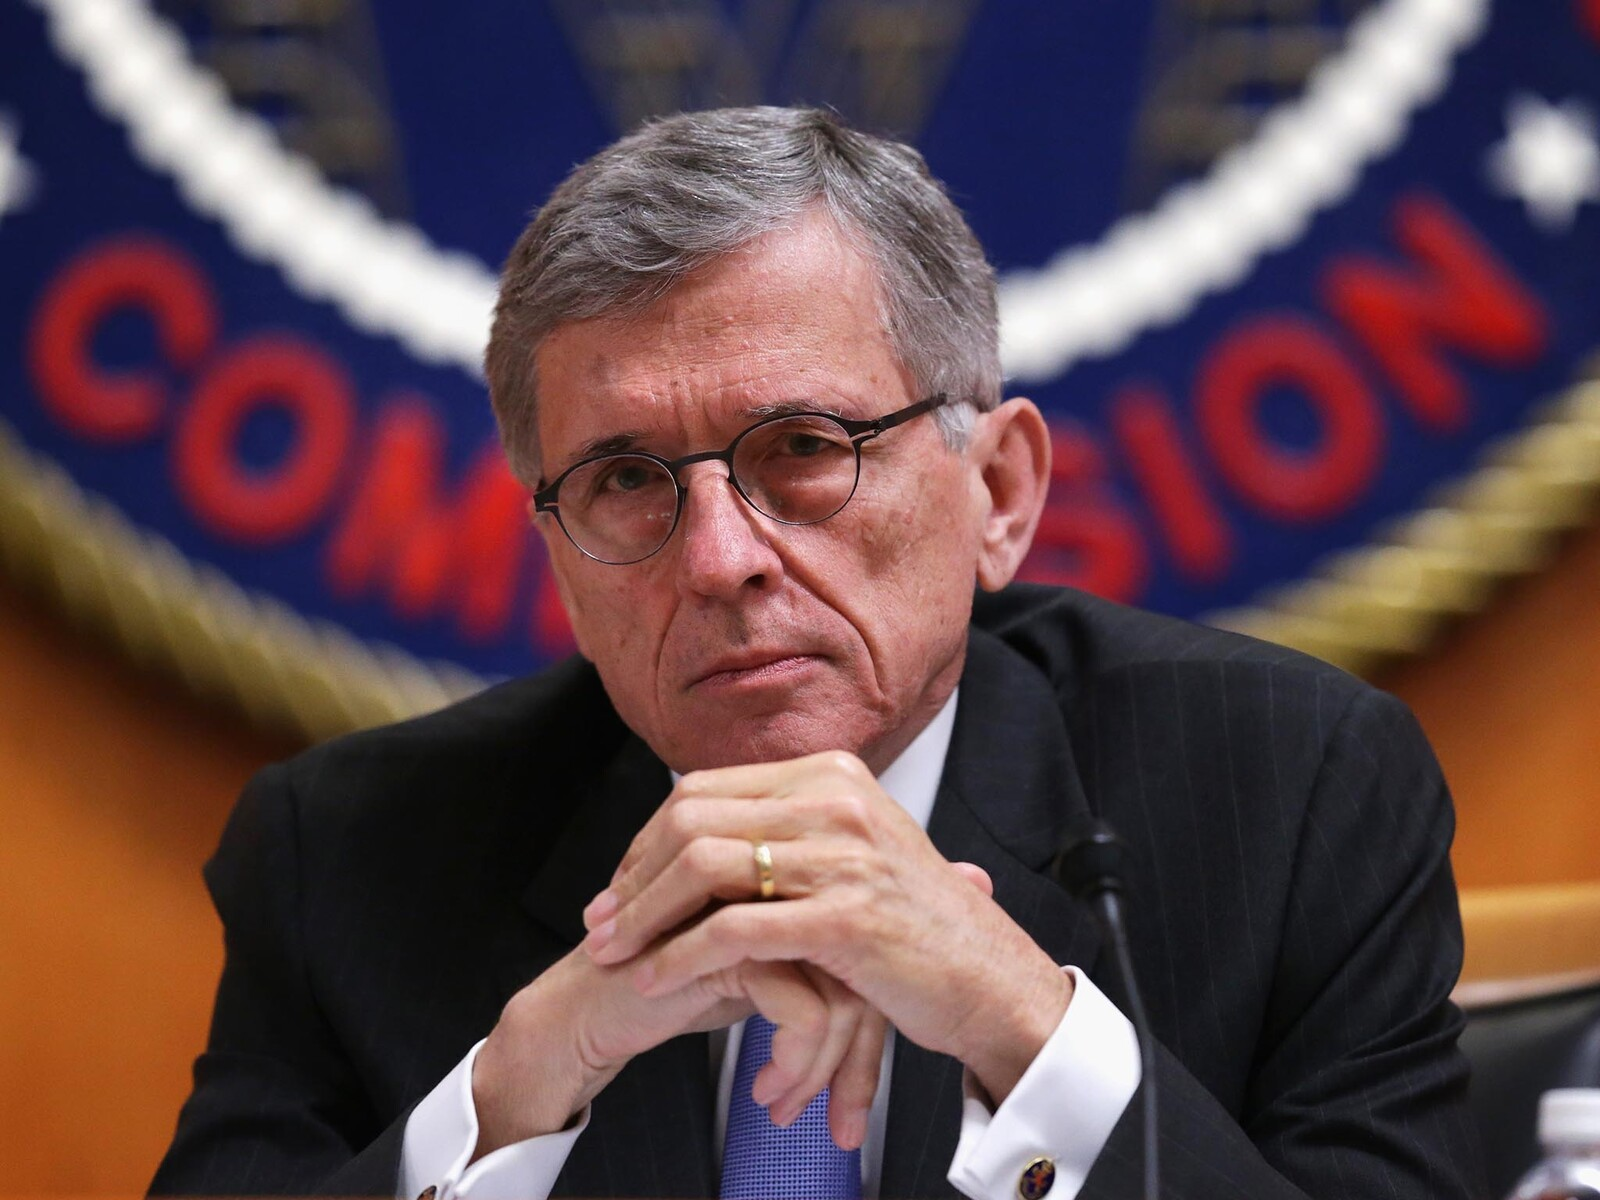 The FCC plans to regulate the internet as a utility